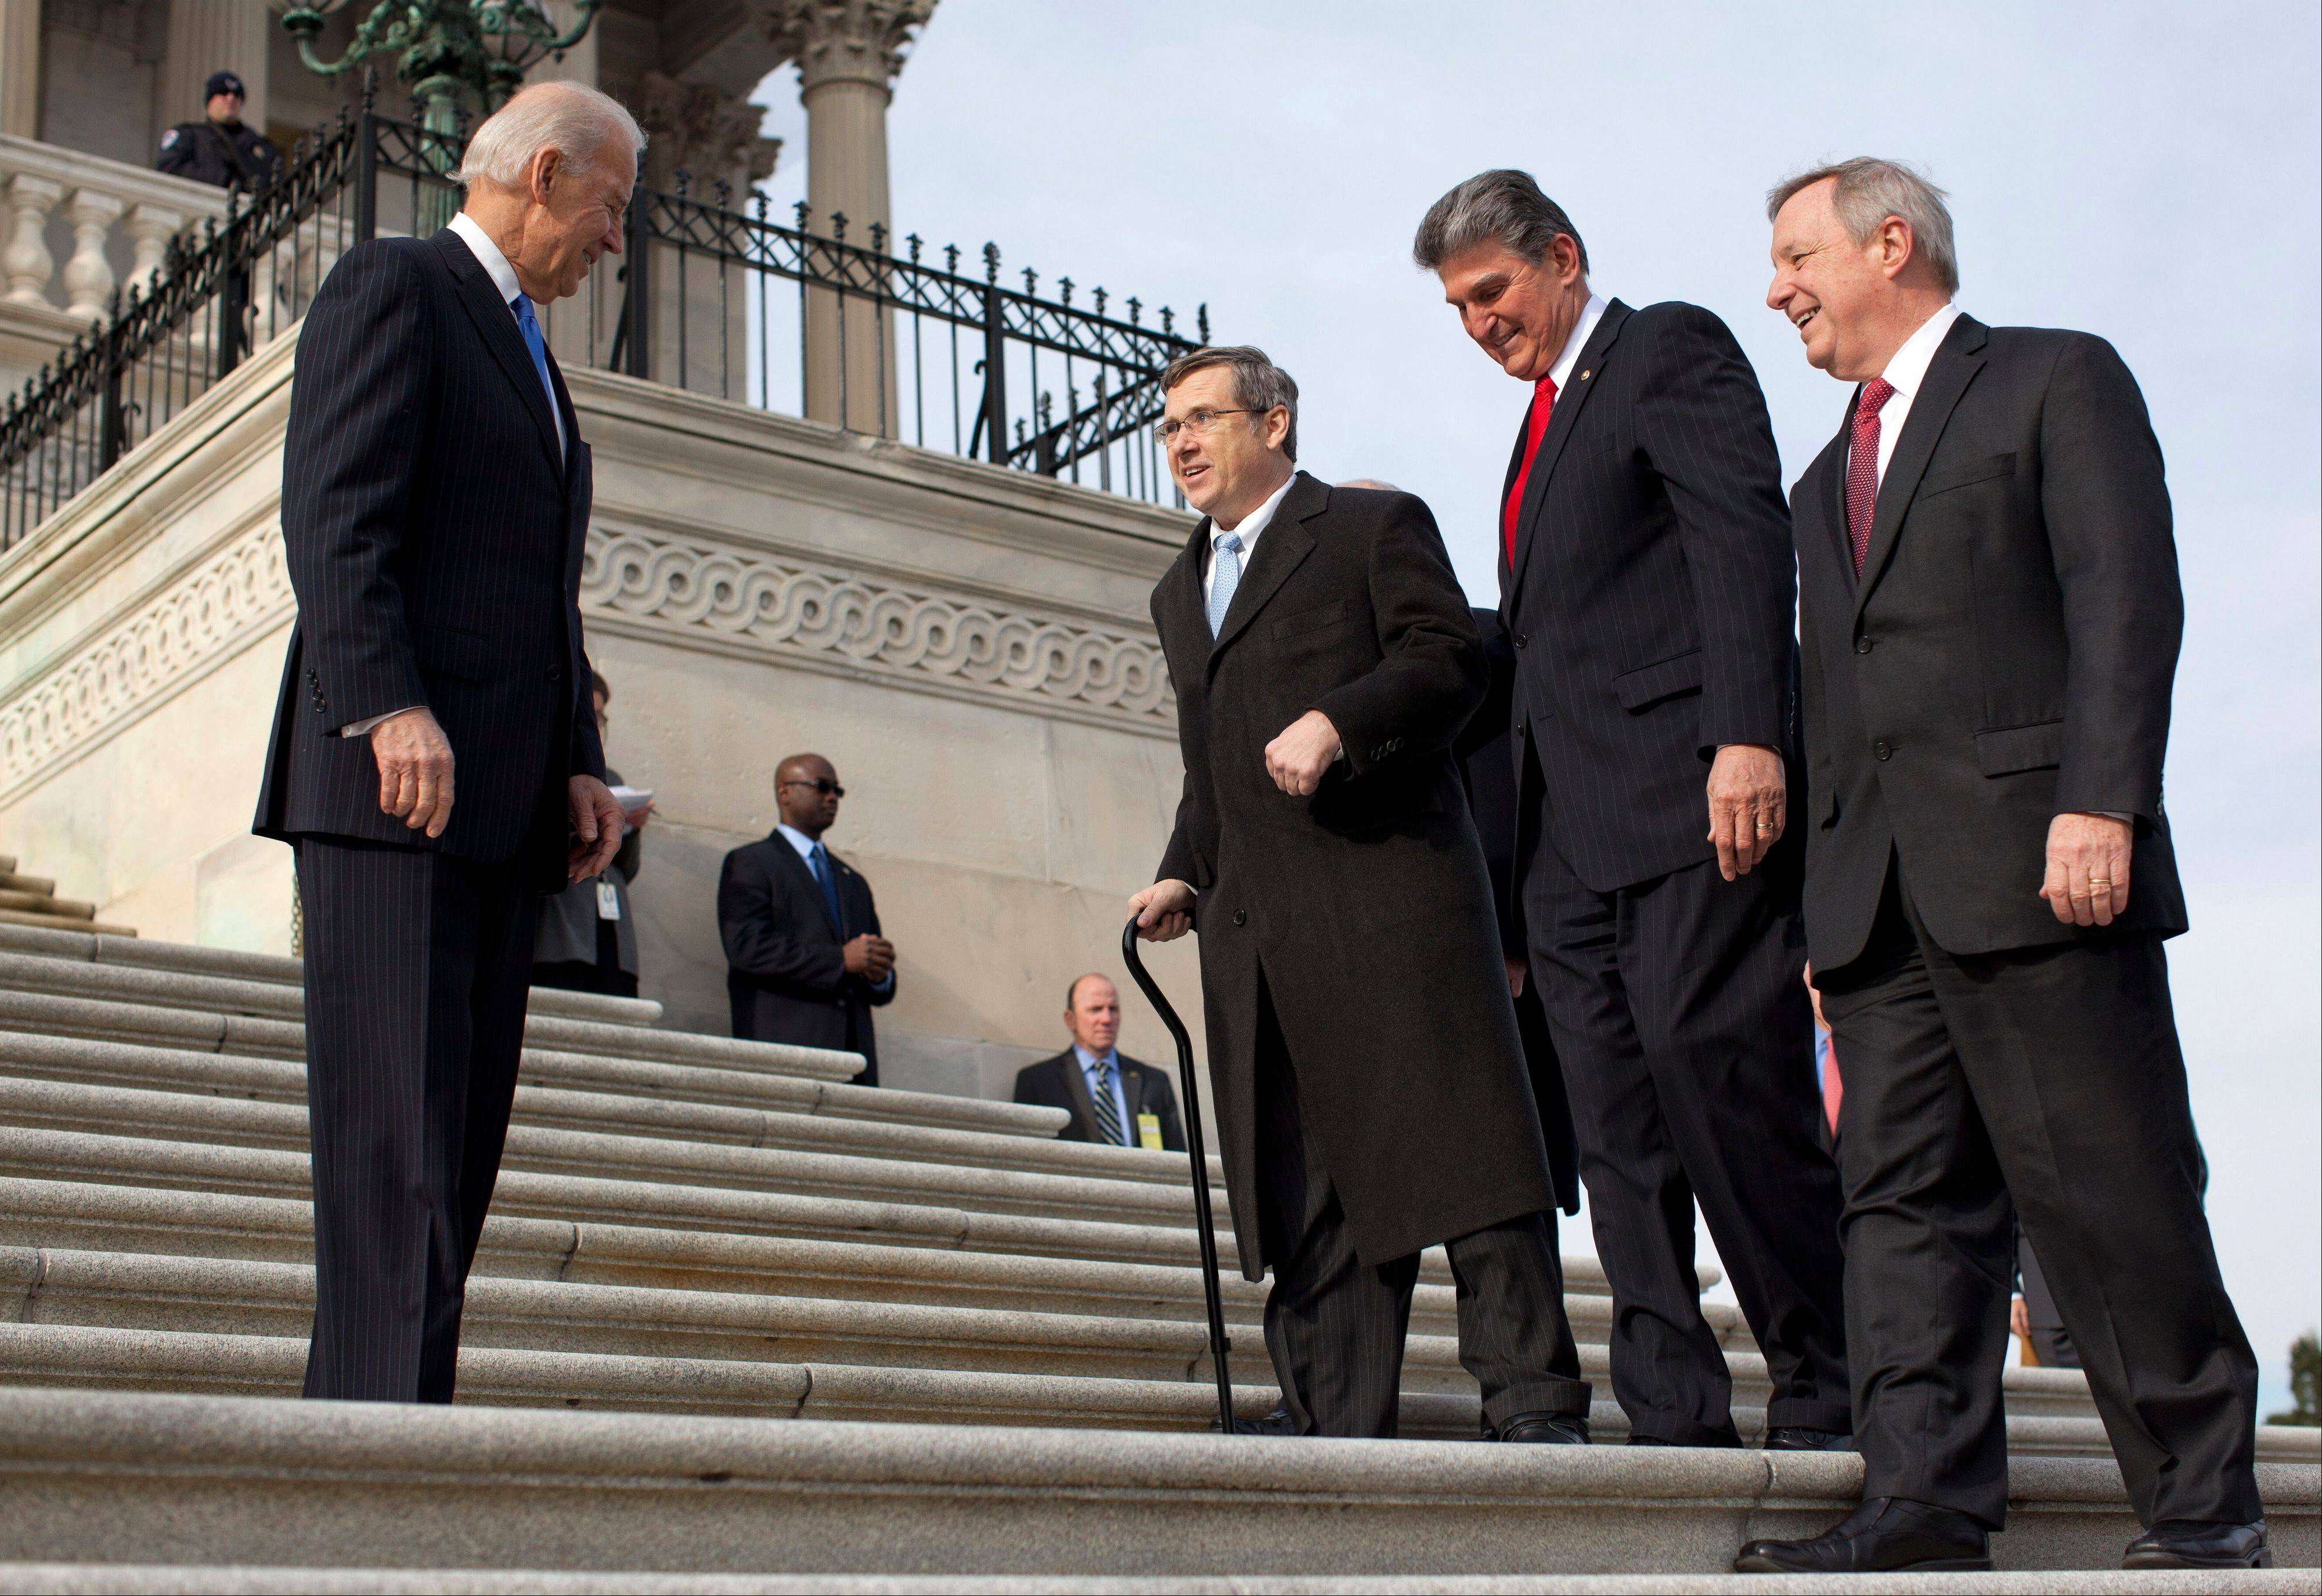 Vice President Joe Biden watches as Sen. Mark Kirk, accompanied by Sen. Joe Manchin, a West Virginia Democrat, second from right, and Senate Majority whip Dick Durbin walks the steps to the Senate door of the Capitol building yesterday in Washington, D.C.